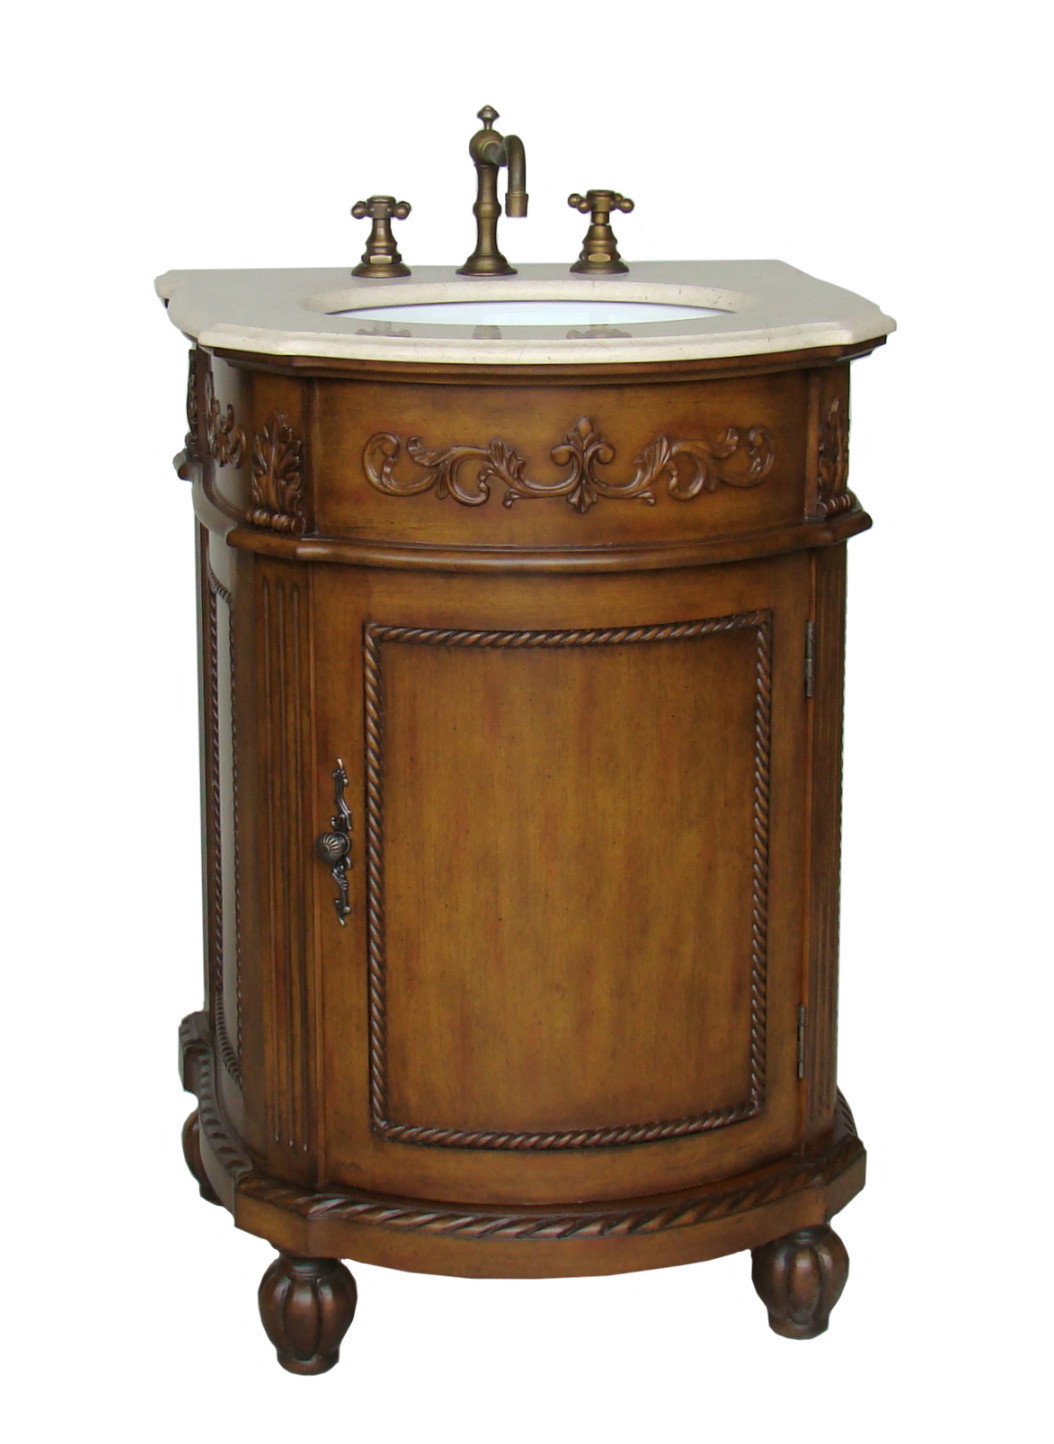 Amazing I Have A Small Bathroom And Have Chosen A 24 Inchwide Vanity, But Am Concerned That A 20 Inchwide Medicine Cabinet Is Too Small To Be Practical Would A Medicine Cabinet That Is Wider Than The Vanity Look Awkward? Could I Get